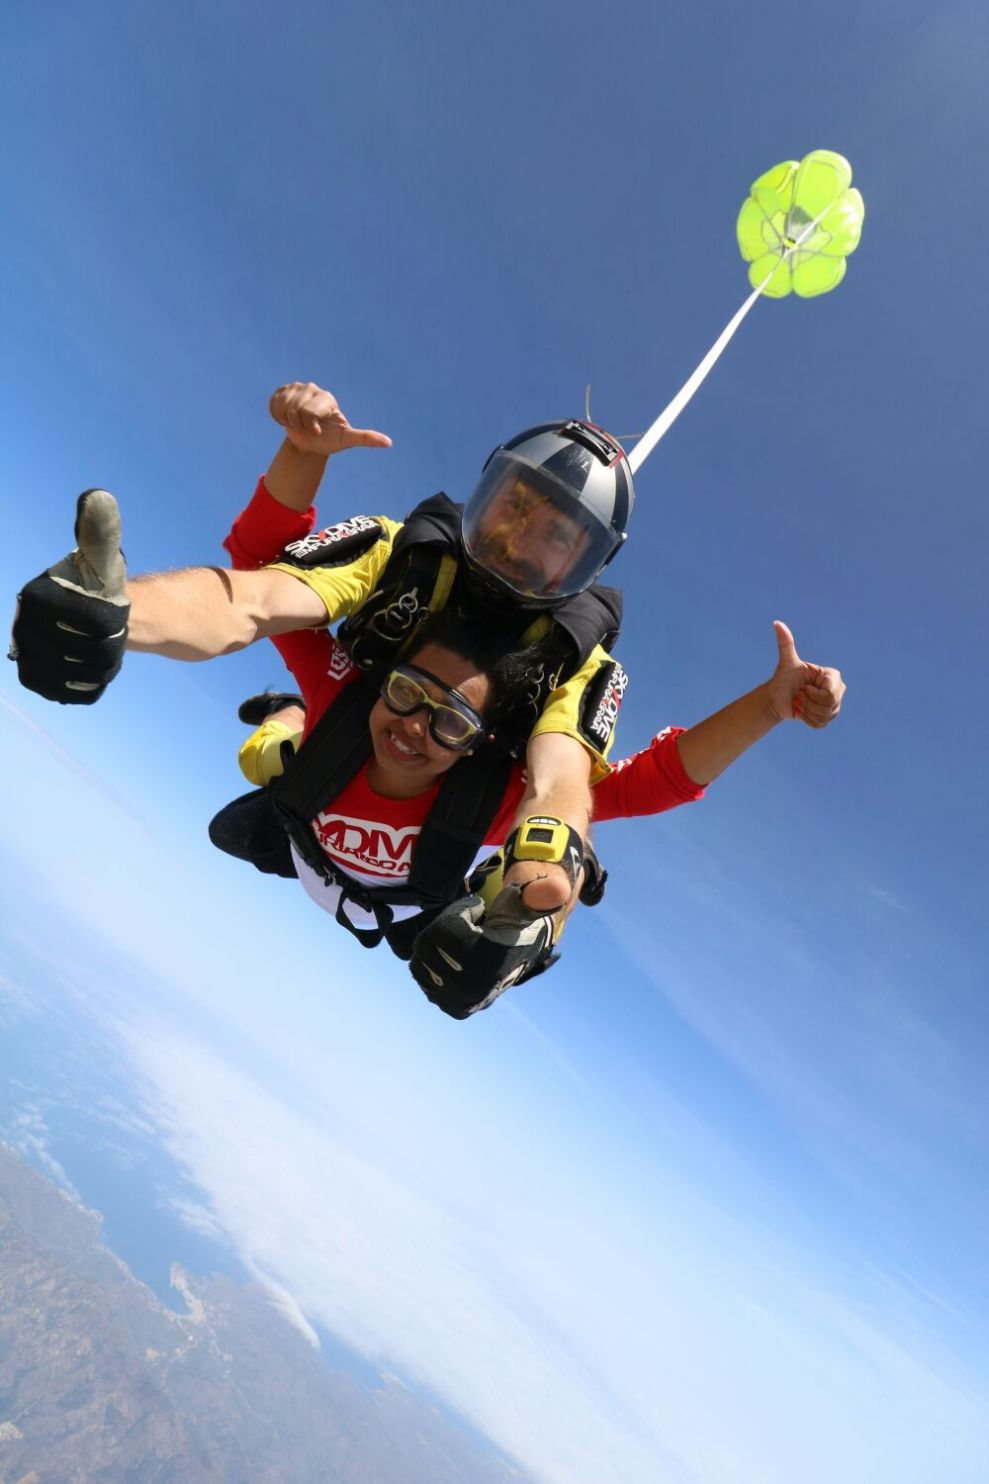 First Skydiving Experience with Skydive Empuriabrava, Spain